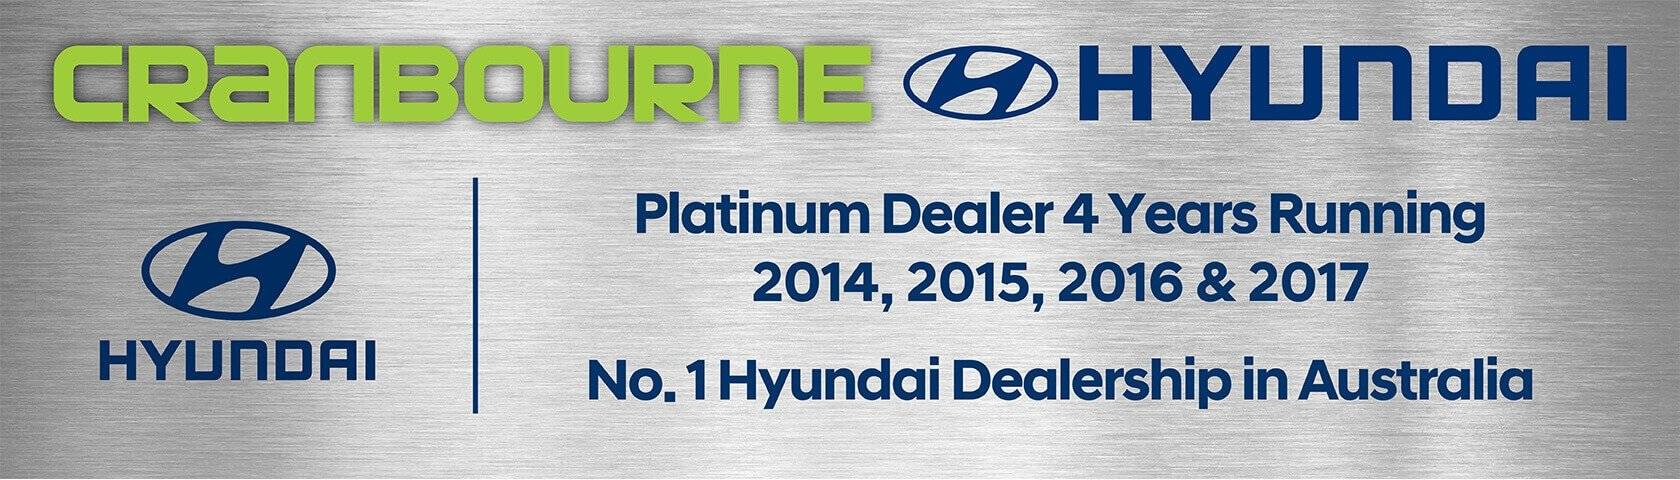 Cranbourne Hyundai Platinum Dealer